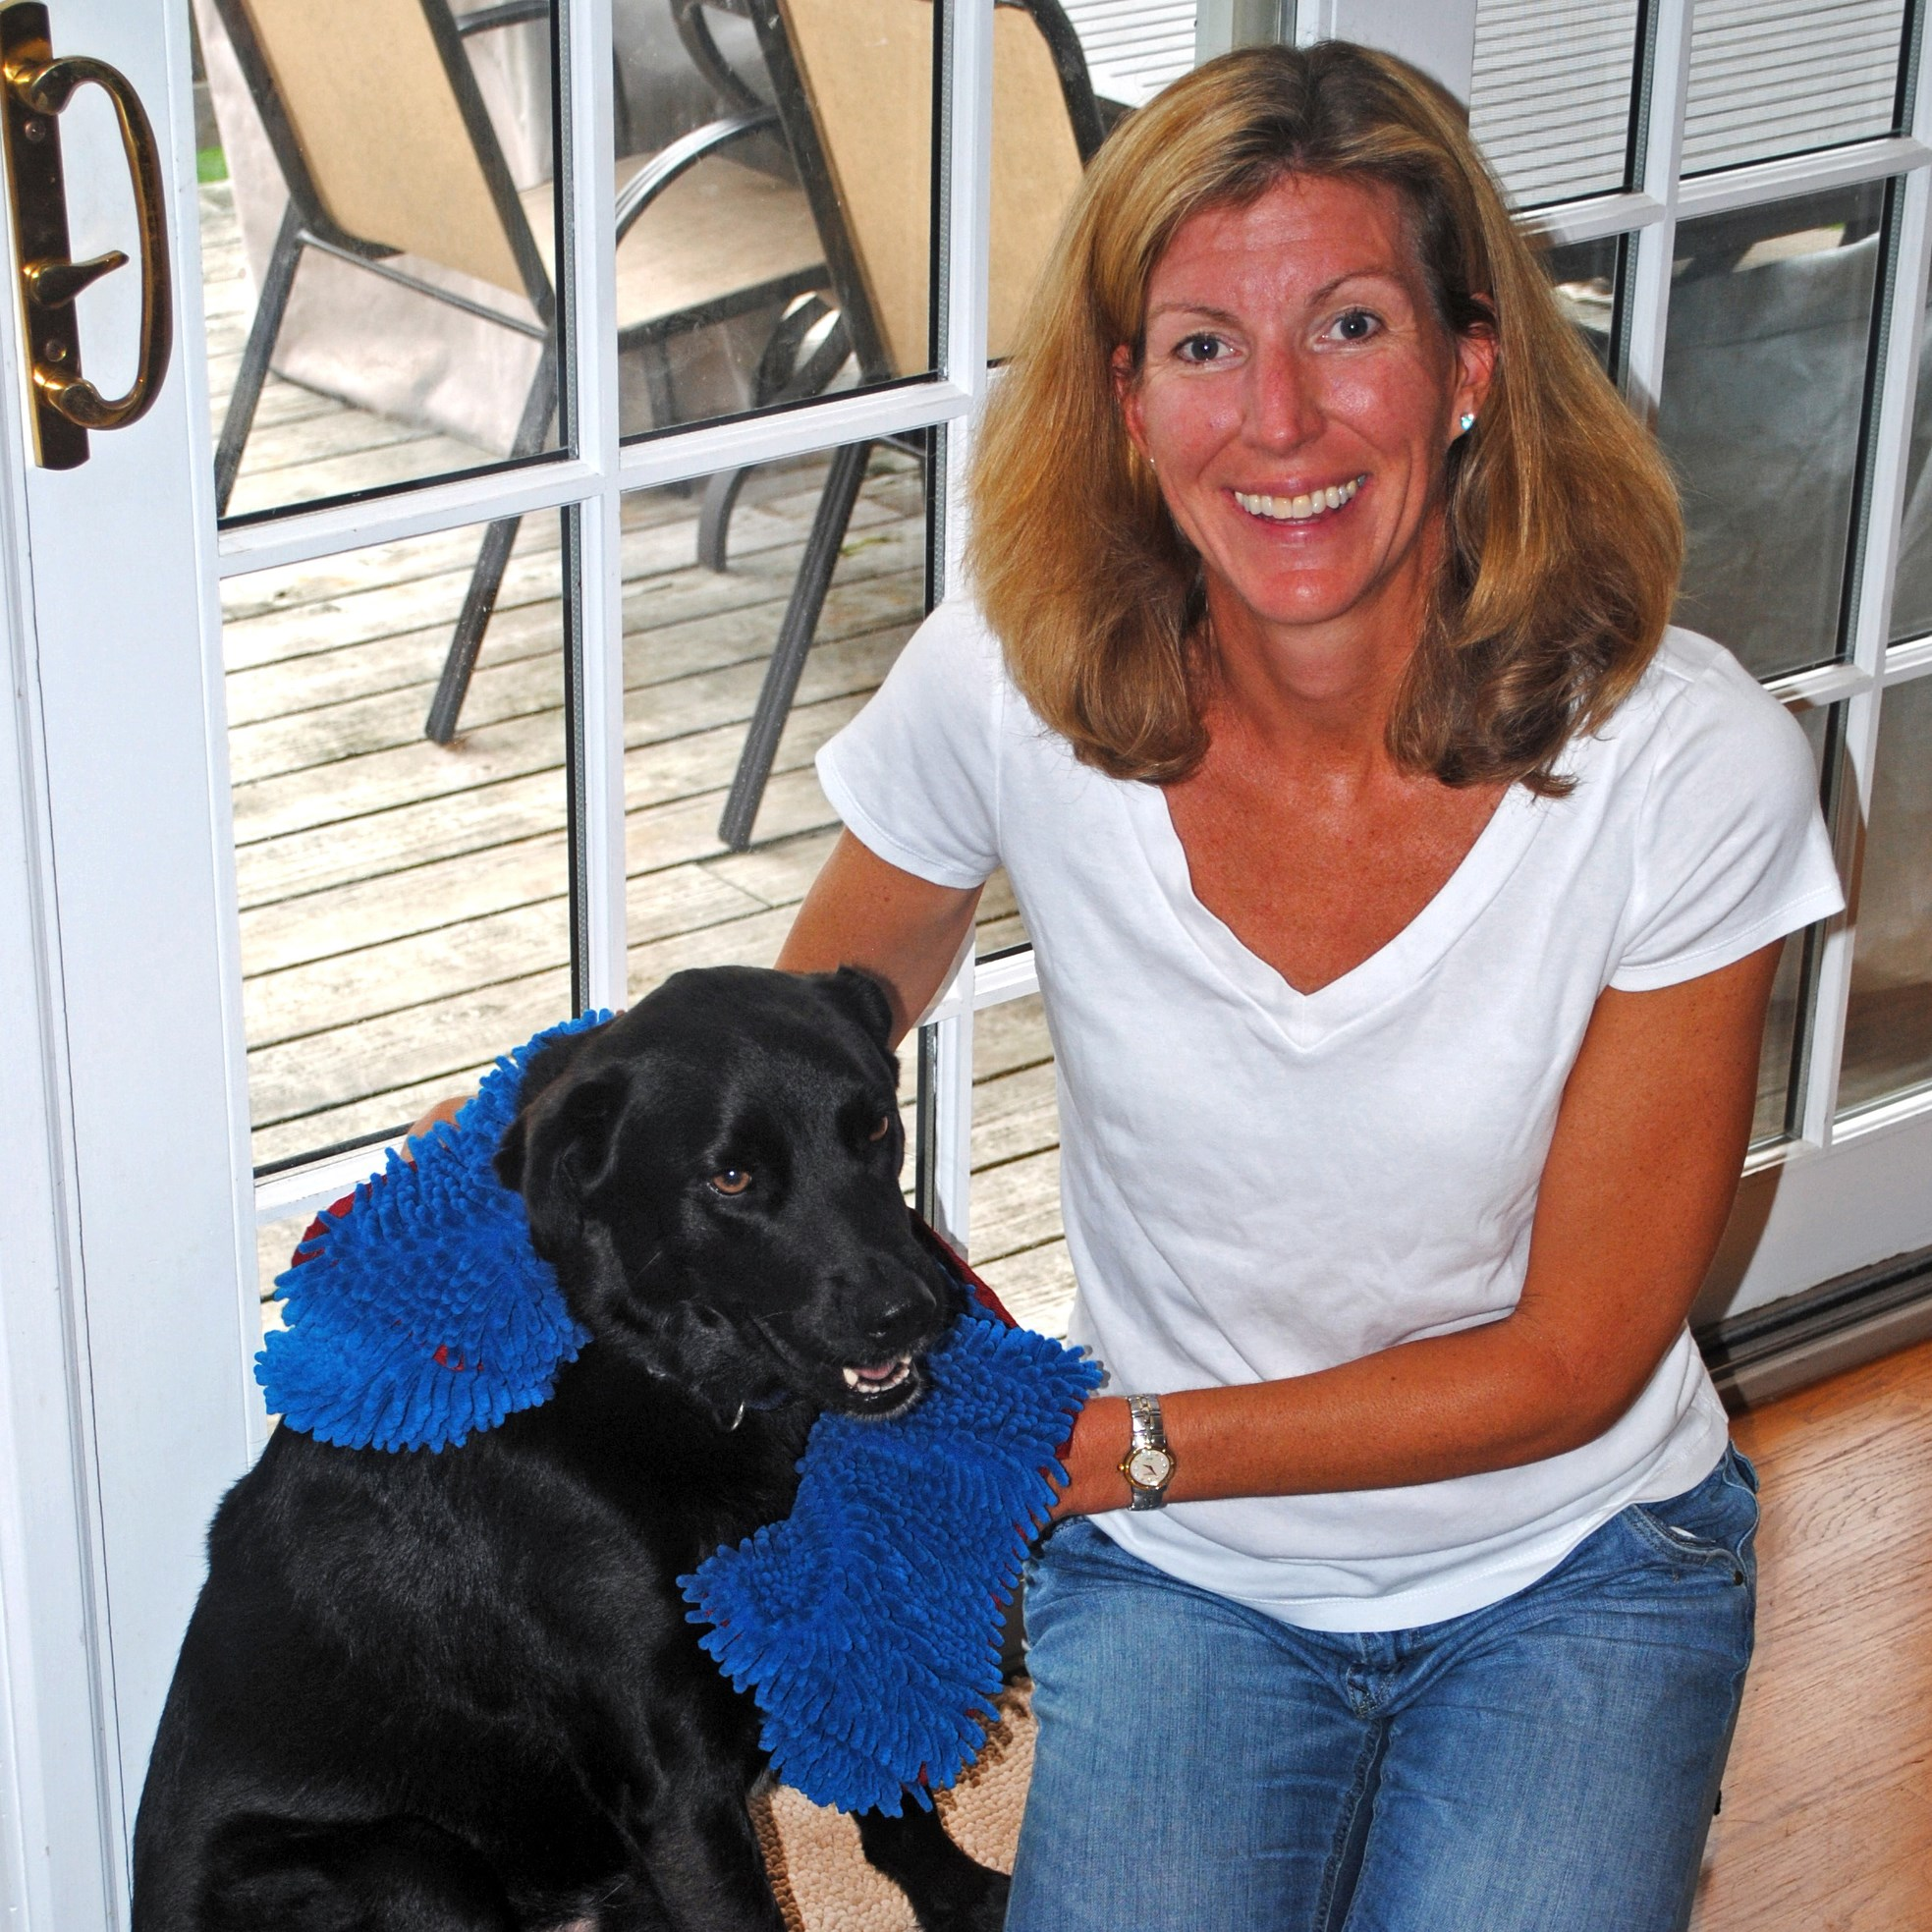 "In this undated photo provided by Soggy Doggy Productions LLC, Joanna Rein, of Larchmont, N.Y., poses at her home with her Labrador-collie named Buddy. Because Buddy was always tracking mud or water into the house, Rein created ""Soggy Doggy,"" a doormat that absorbs most of the mess on the mutt. Rein has sold more than 300,000 mats online since 2010. (Richard A. Randall/Soggy Doggy Productions LLC via AP)"